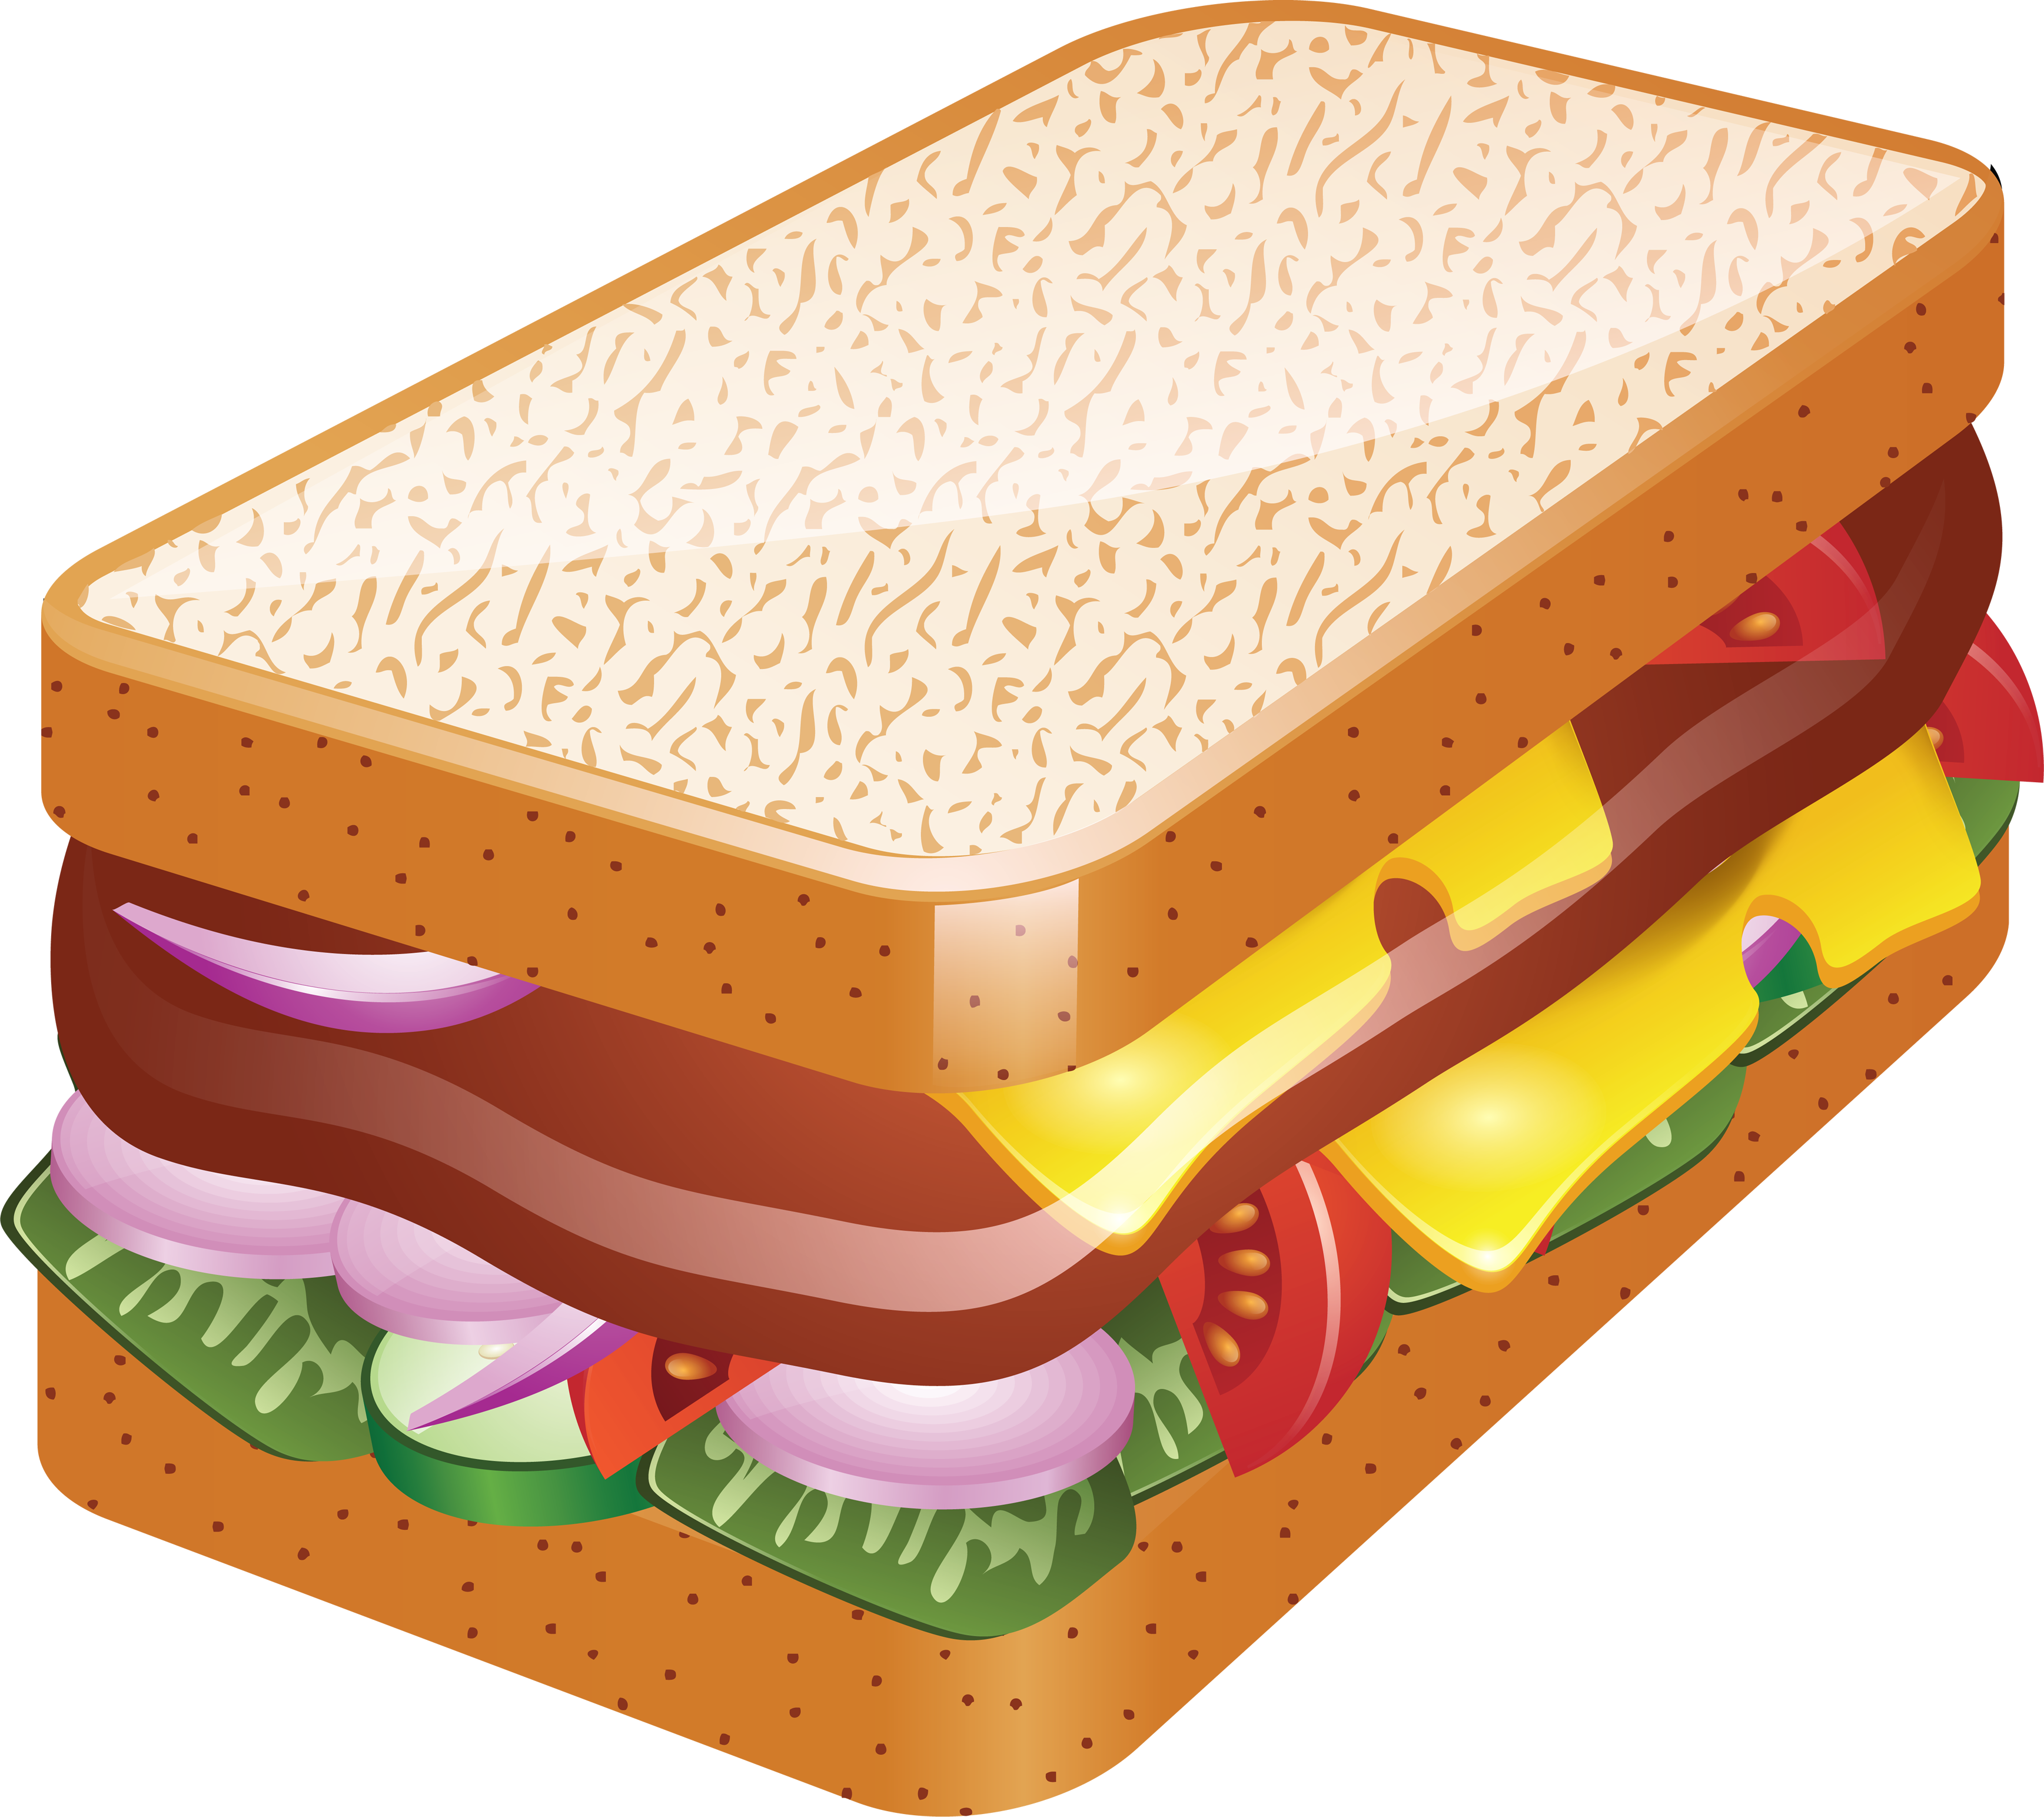 Tuna sandwich clipart clipart royalty free Tuna Sandwich Cliparts - Making-The-Web.com clipart royalty free